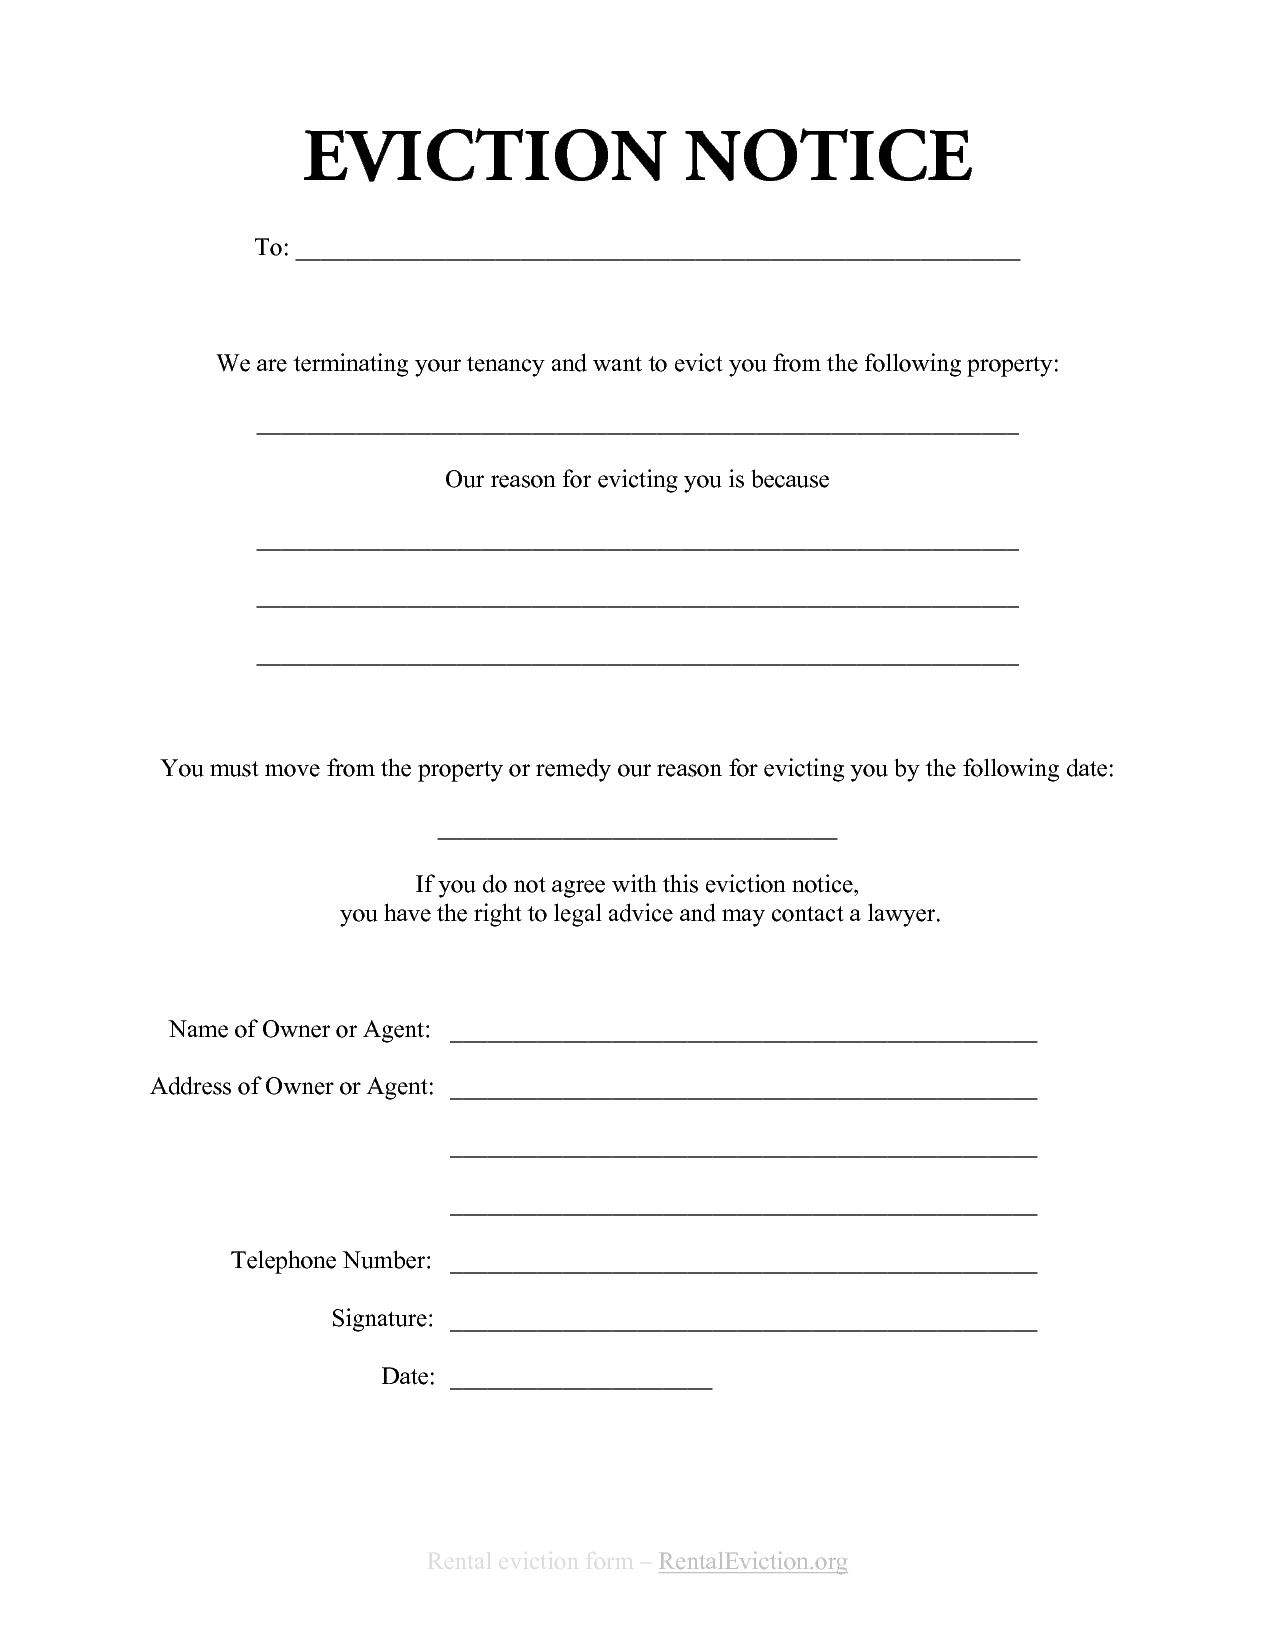 Free Print Out Eviction Notices | Free Rental Eviction Notice | G - Free Printable Eviction Notice Ohio